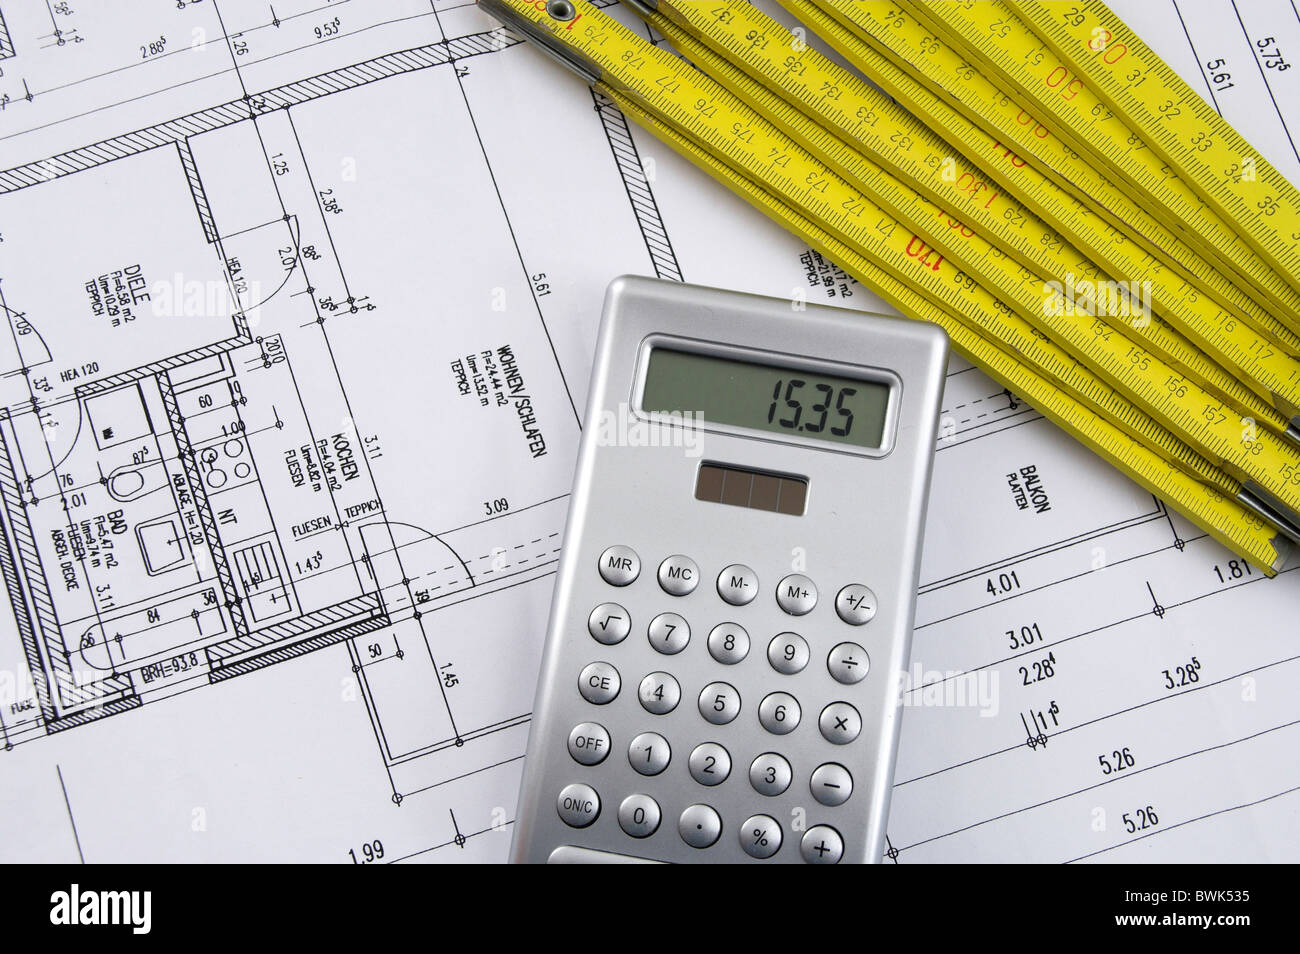 charming building a house calculator #6: construction calculation costing building house house building plans plan  expenses costs calculation comput